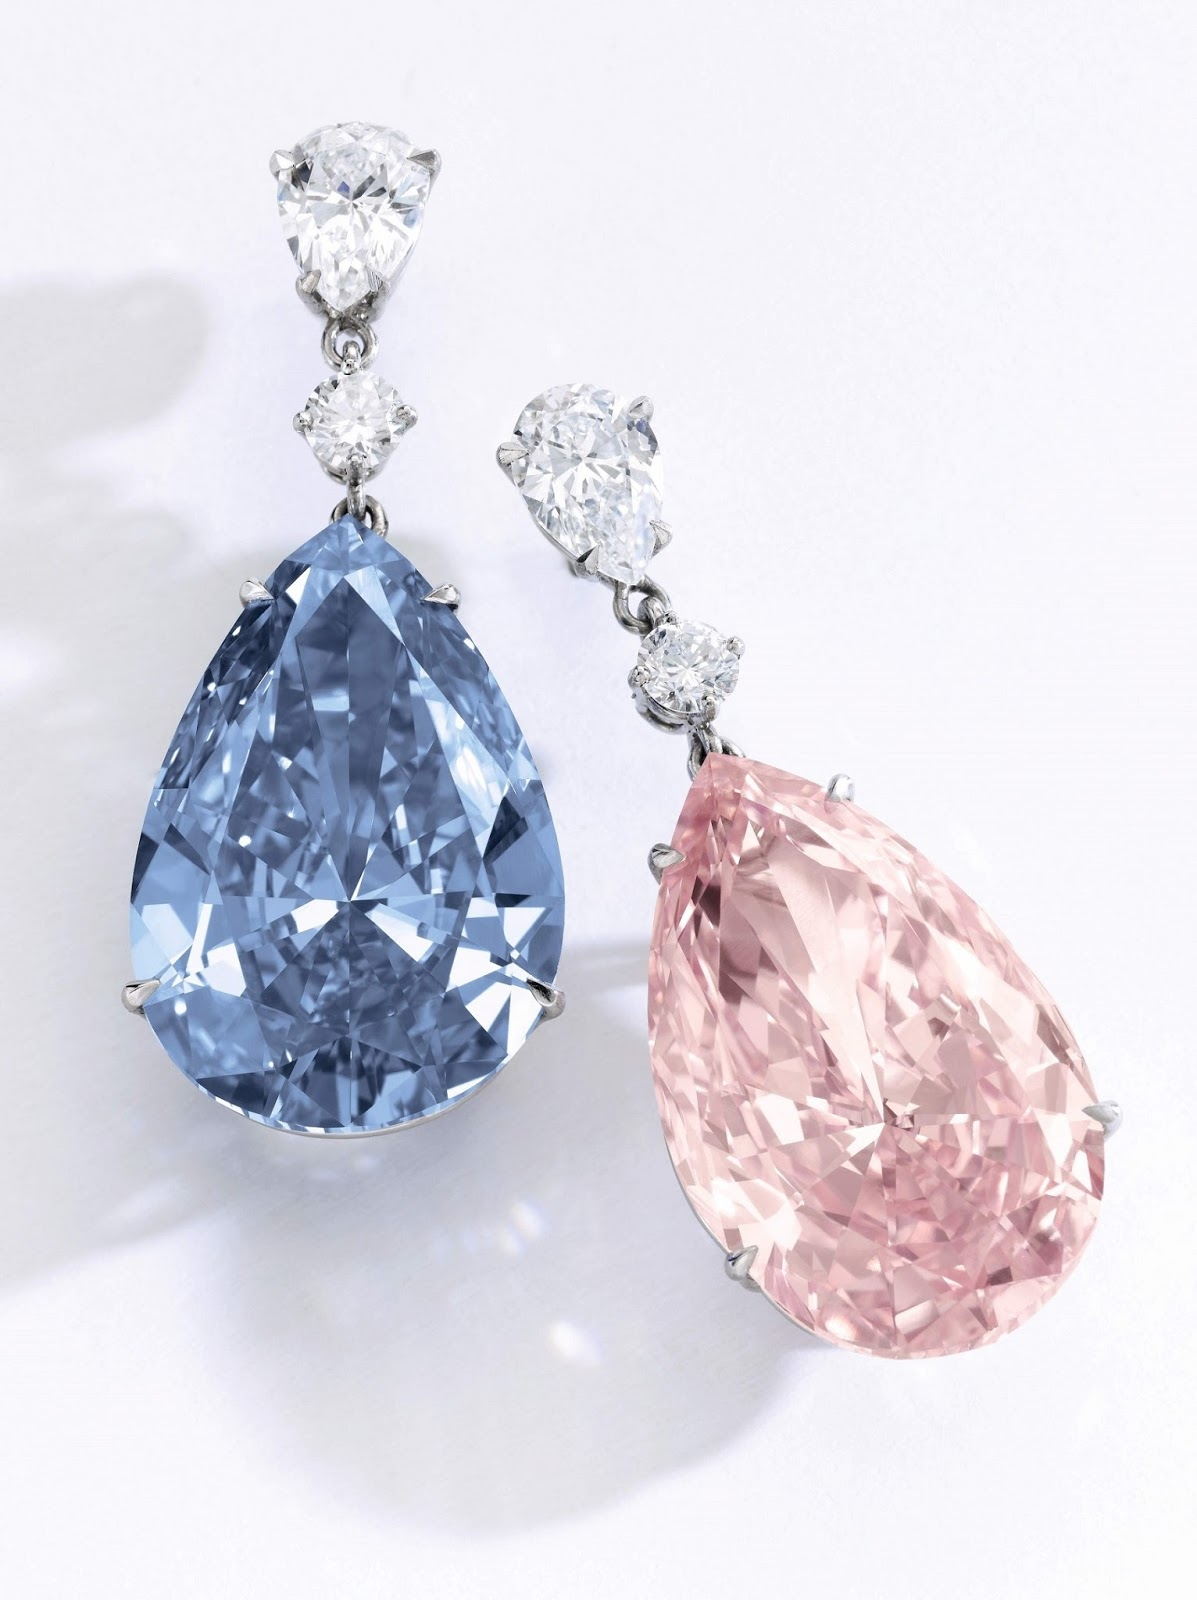 article tinted seymour society jane fancy colored guide gem diamond blue international buying